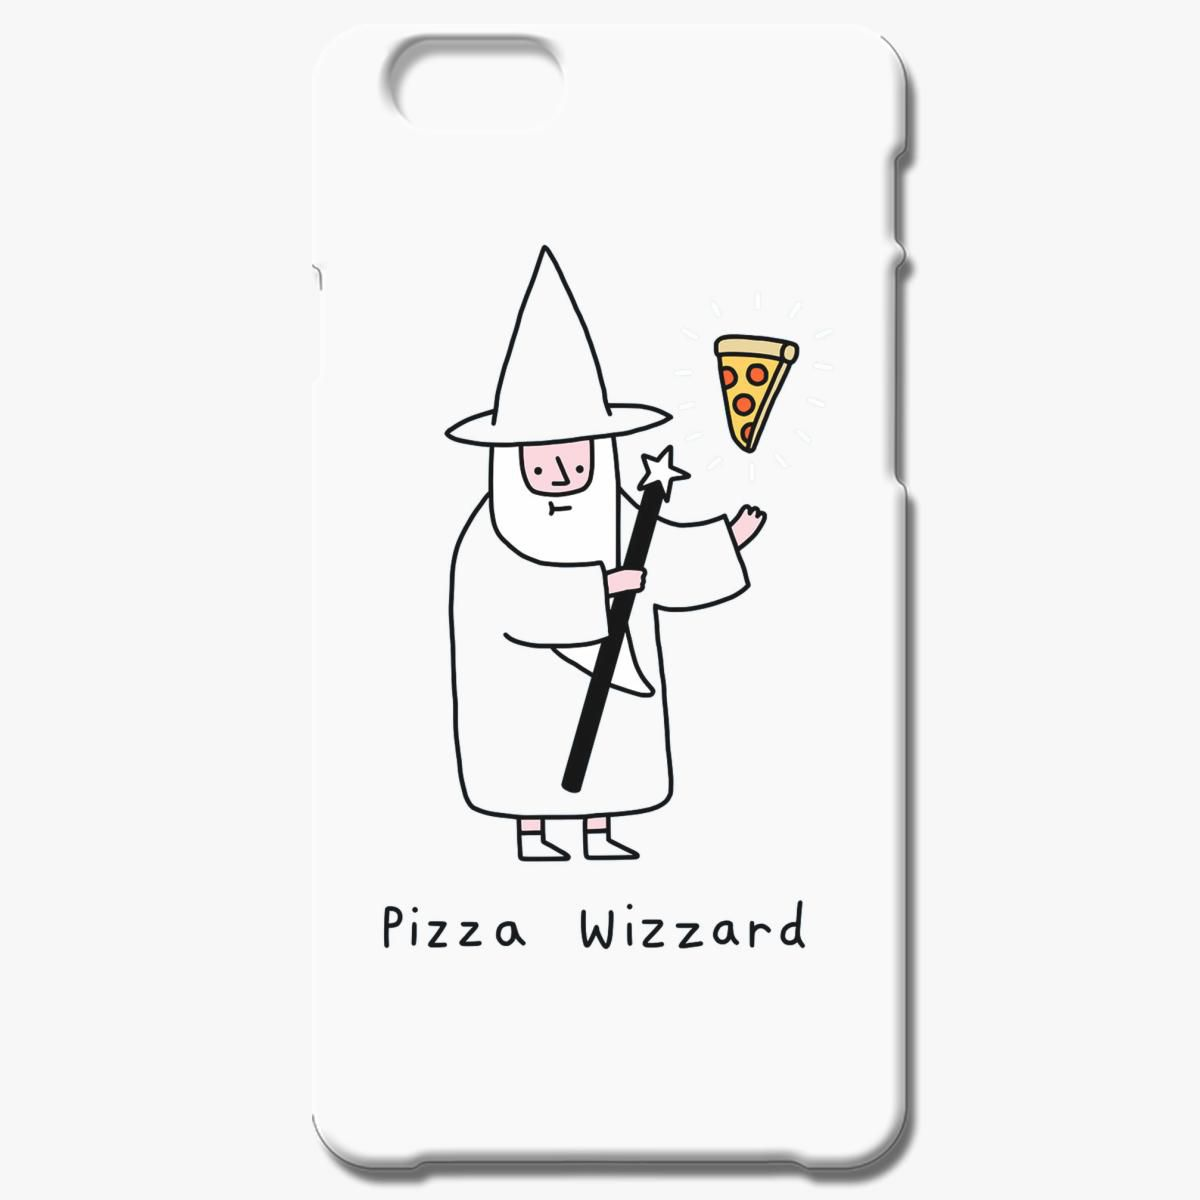 Pizza Wizzard Iphone 6 6s Case